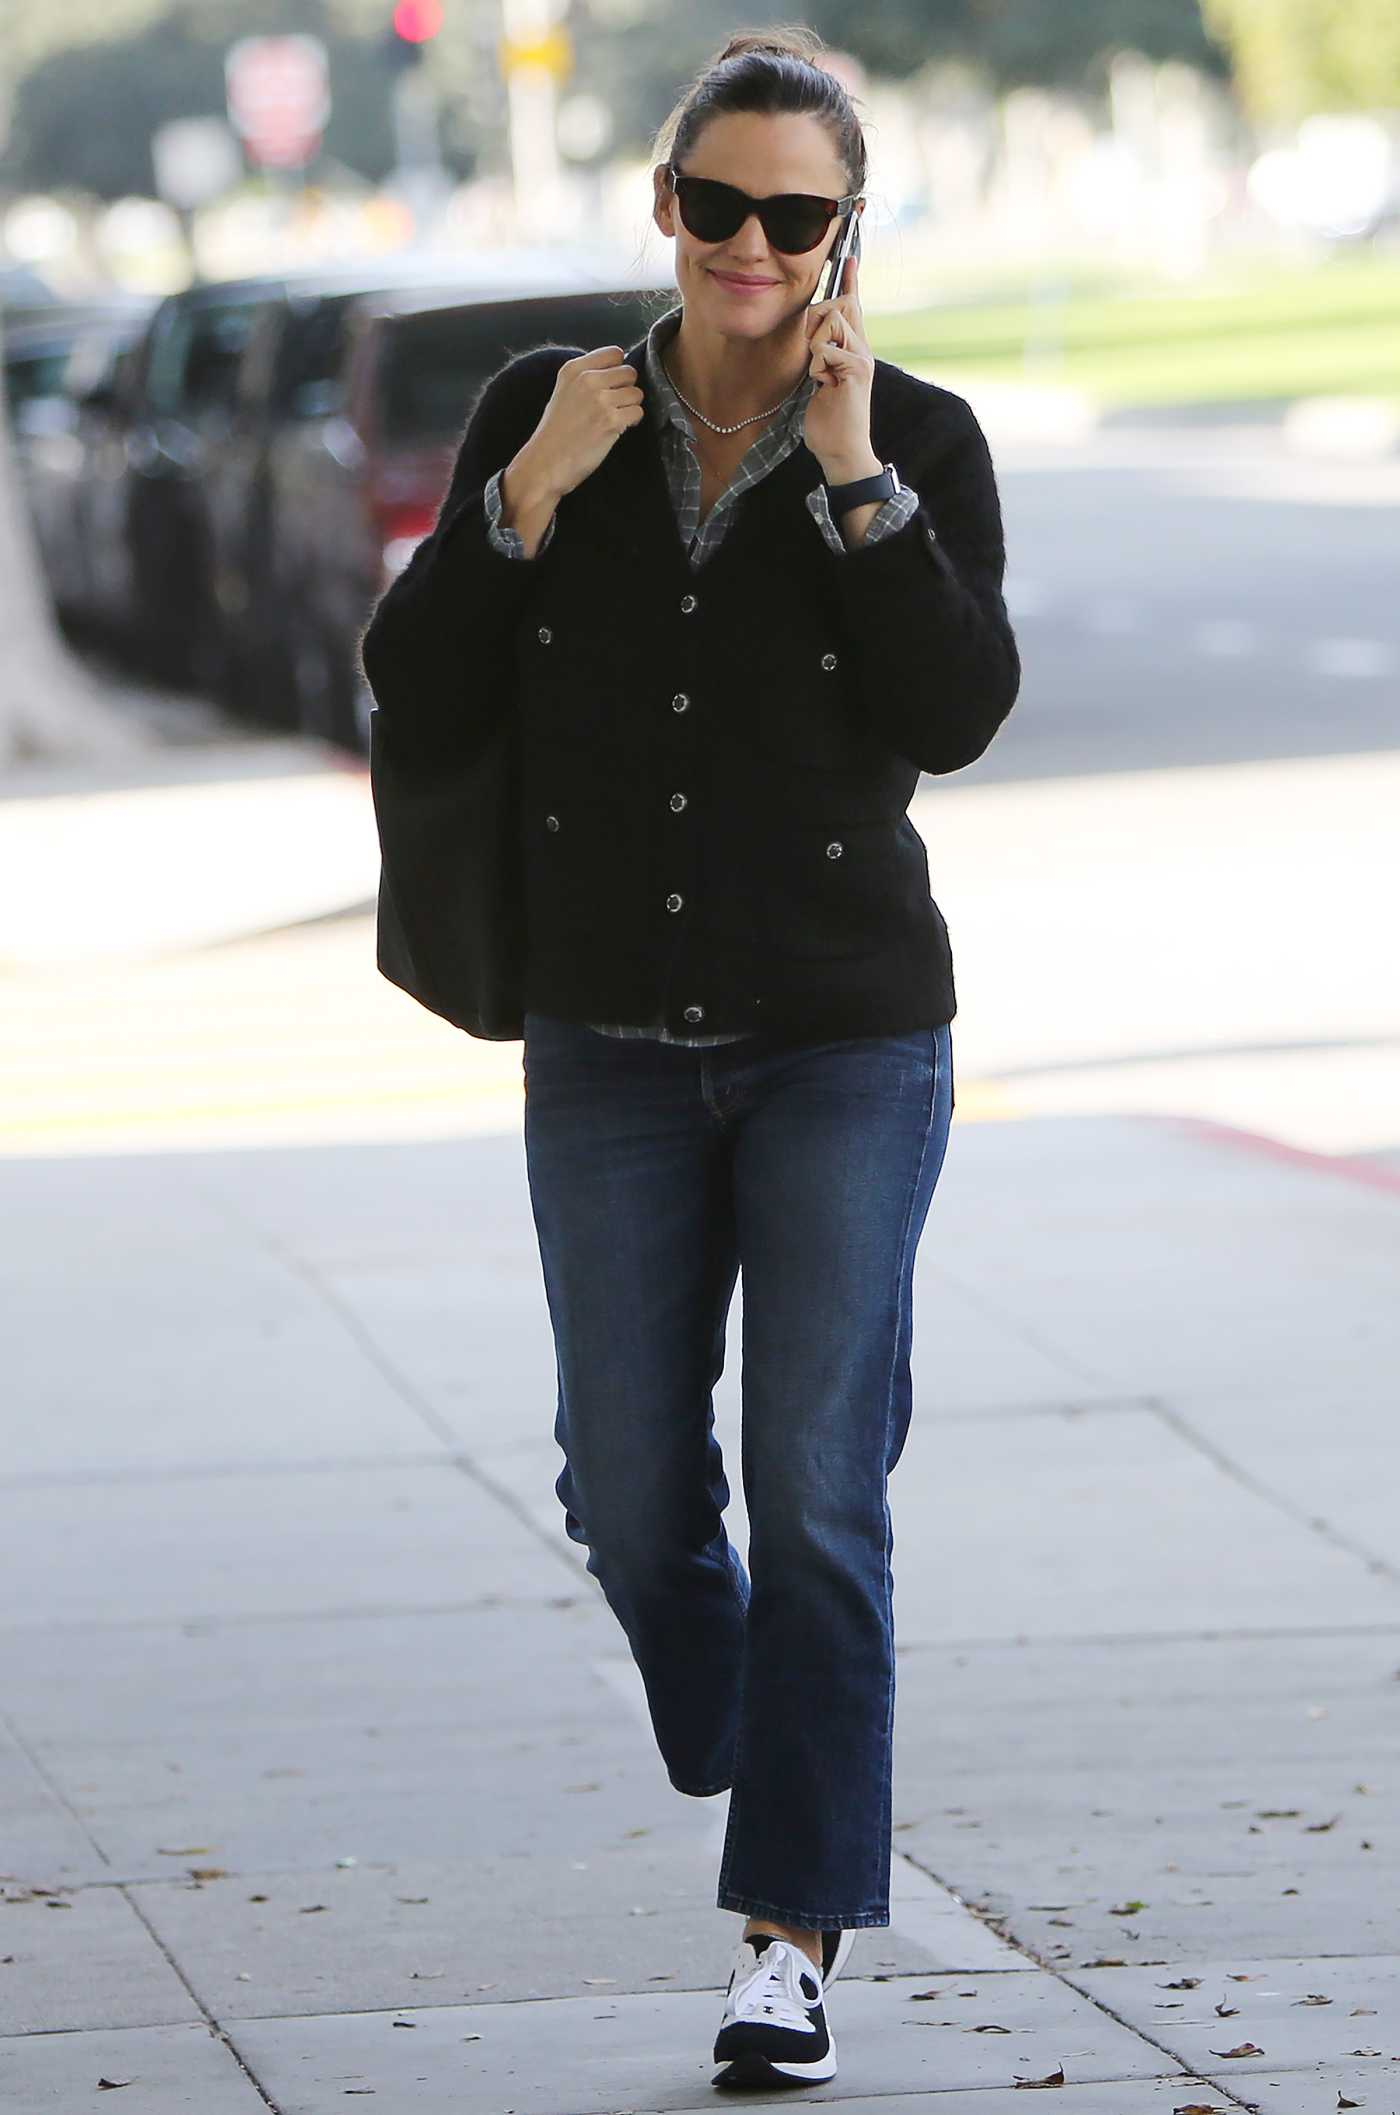 Jennifer Garner in a Black Sneakers Was Seen Out in Los Angeles 01/04/2020